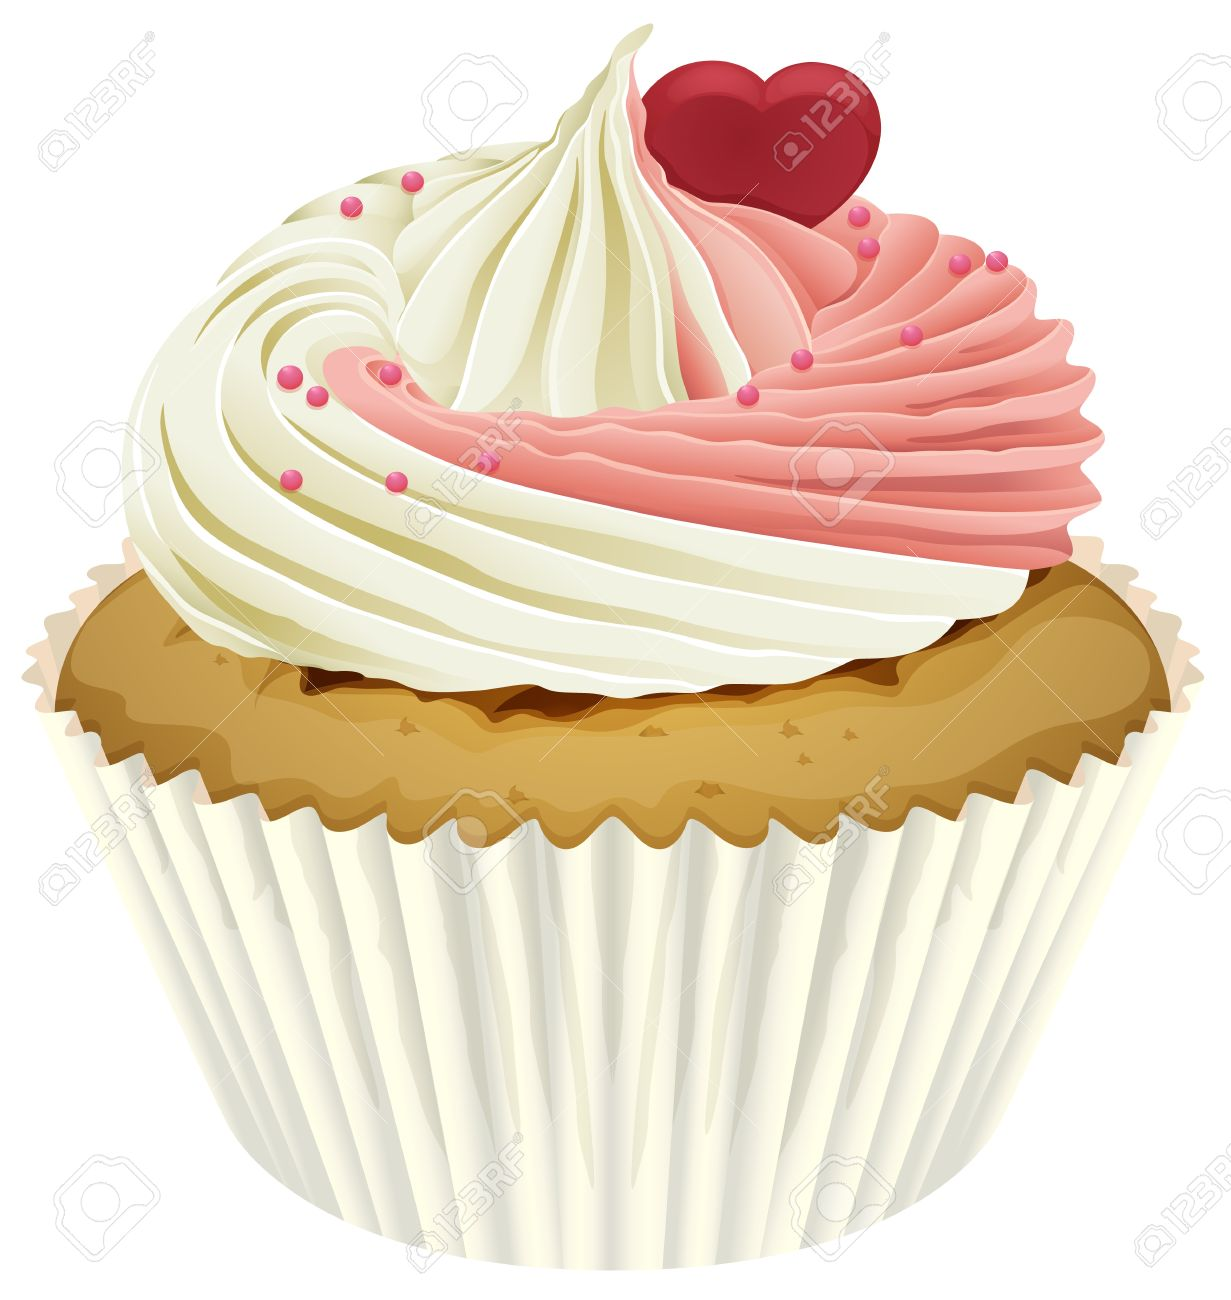 illustration of a cupcake on a white background Stock Vector - 16188258